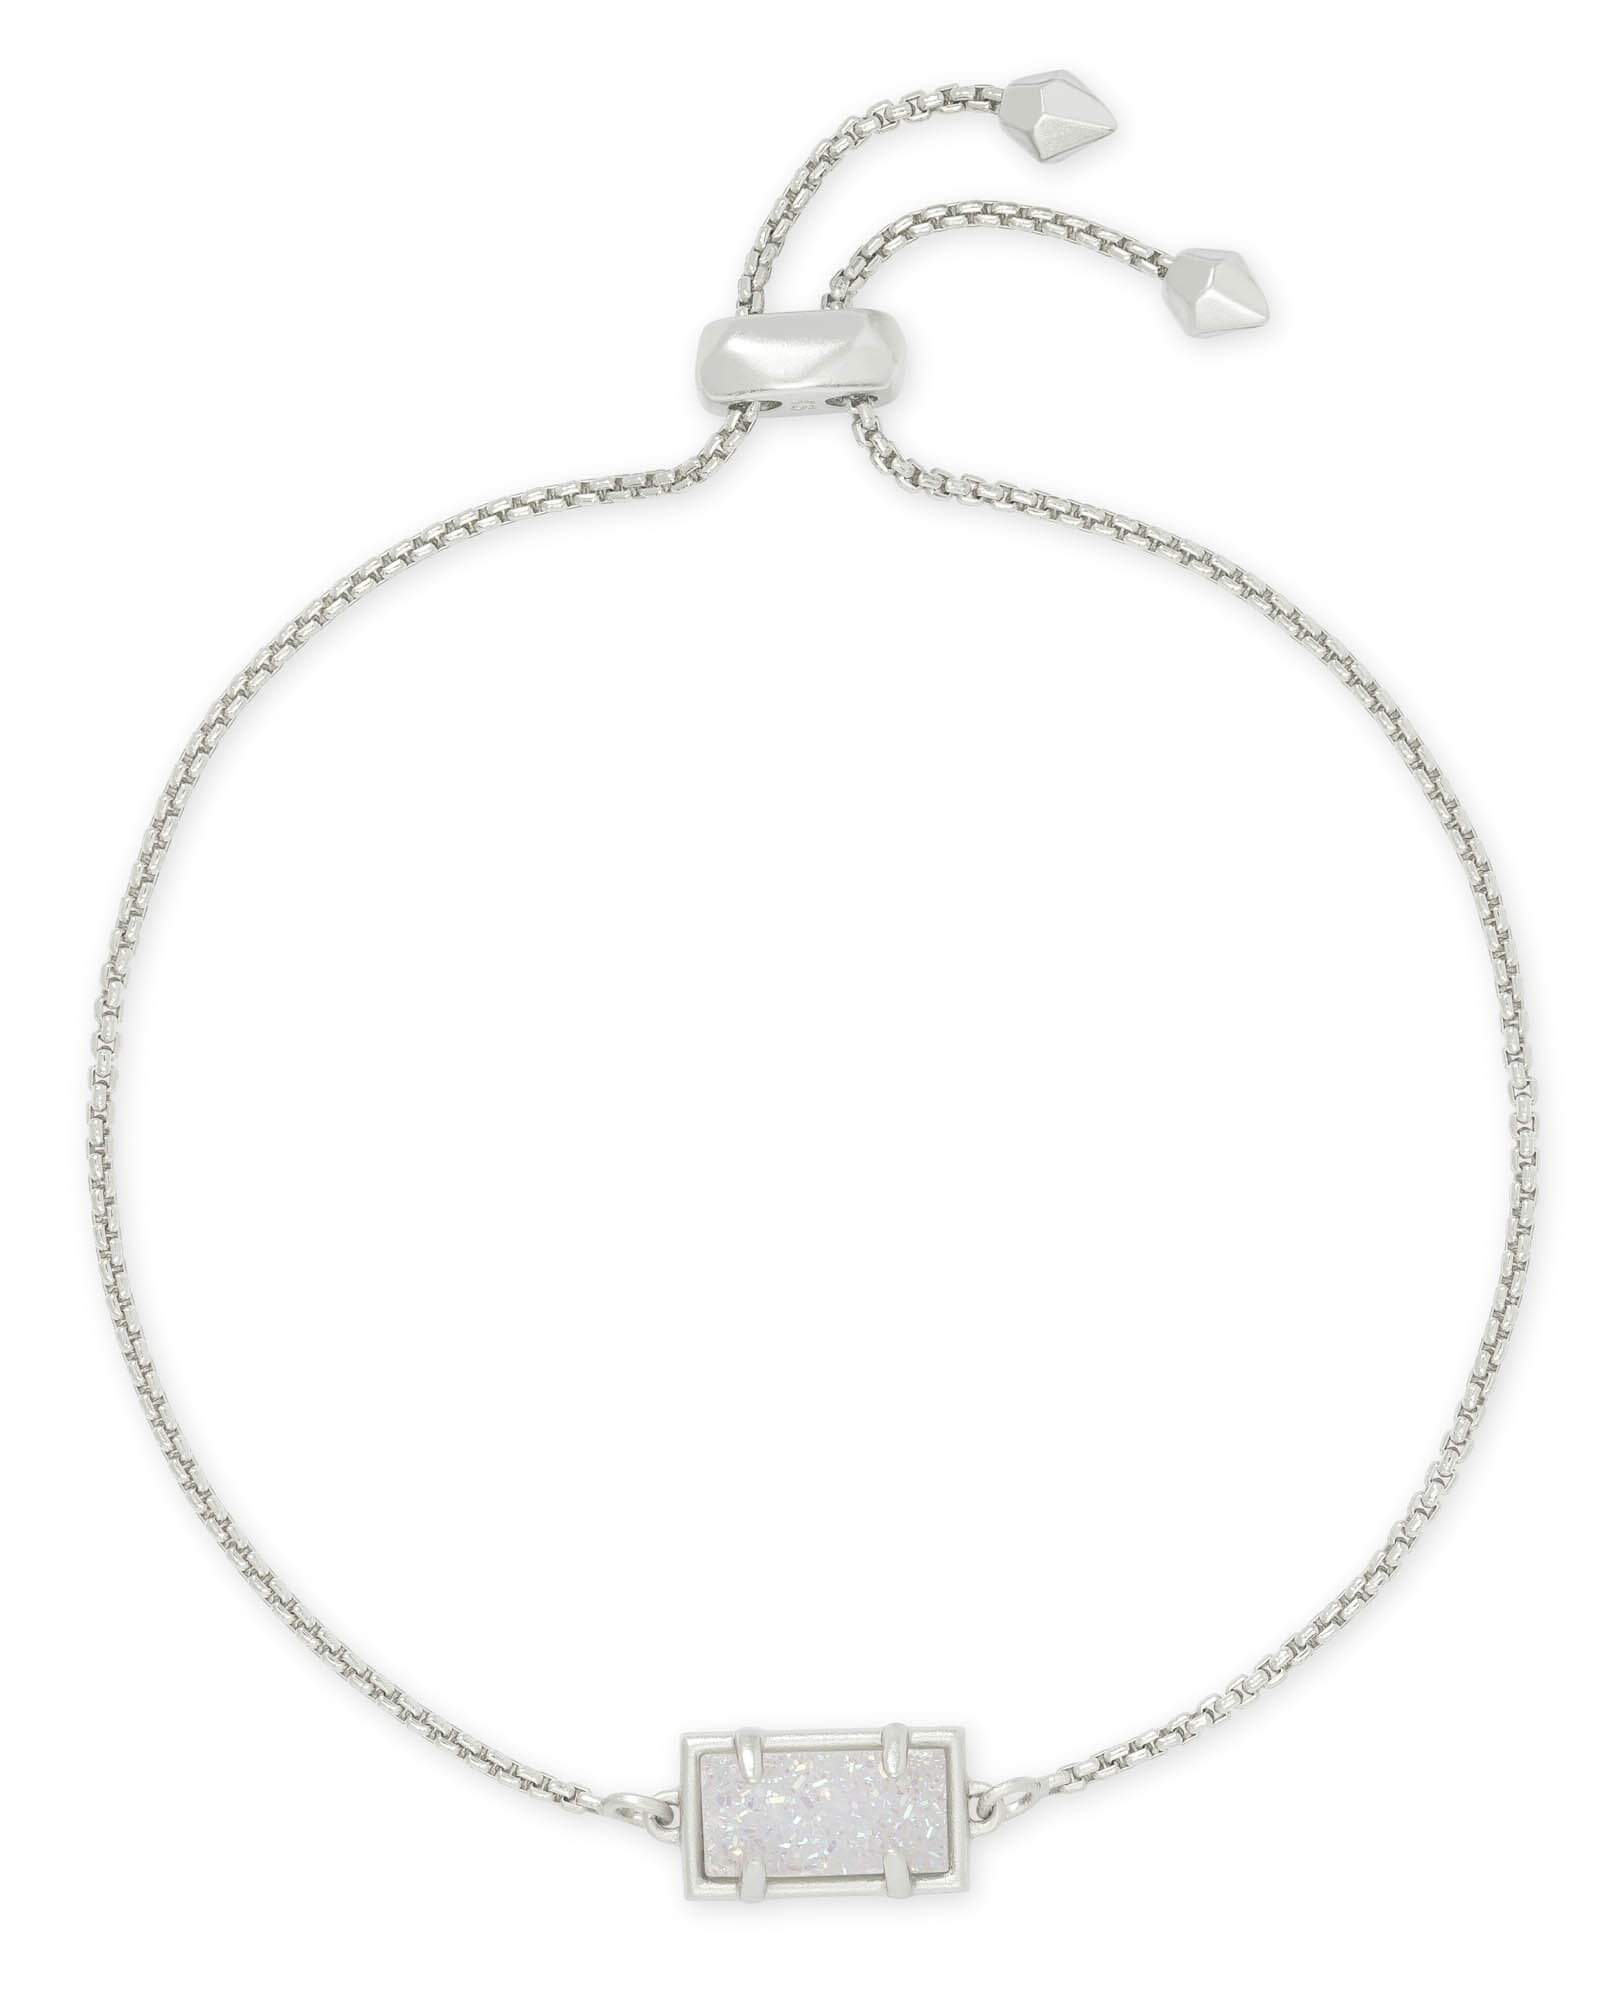 Phillipa Chain Bracelet in Silver